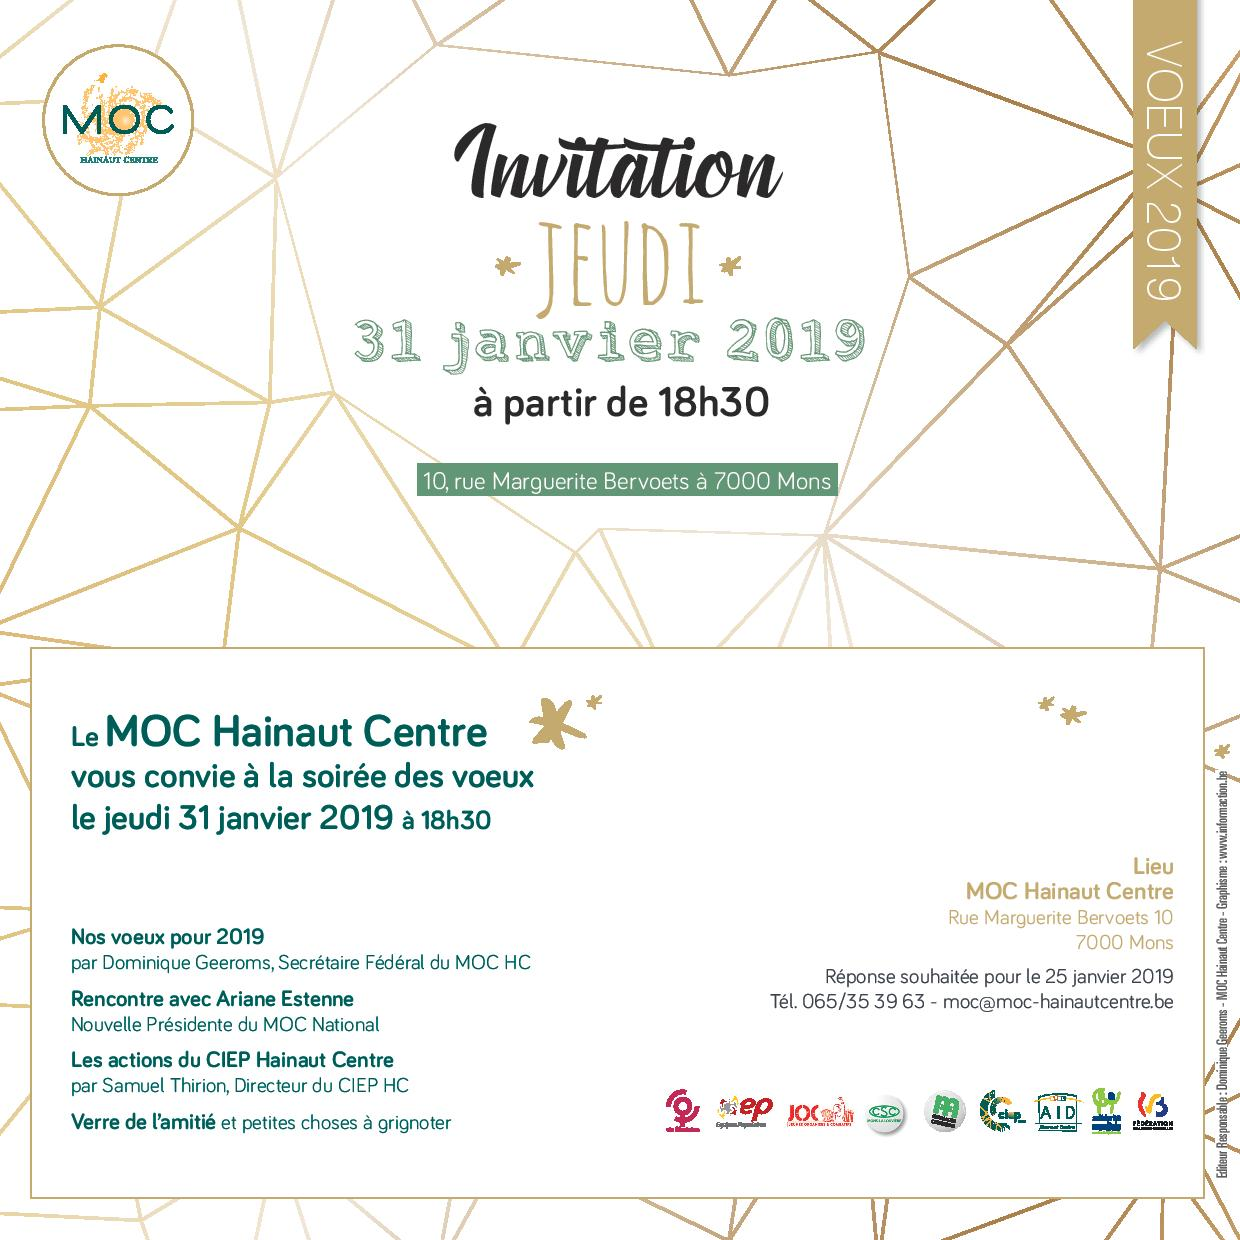 MOCHC voeux2019 invitation mail page 001 1